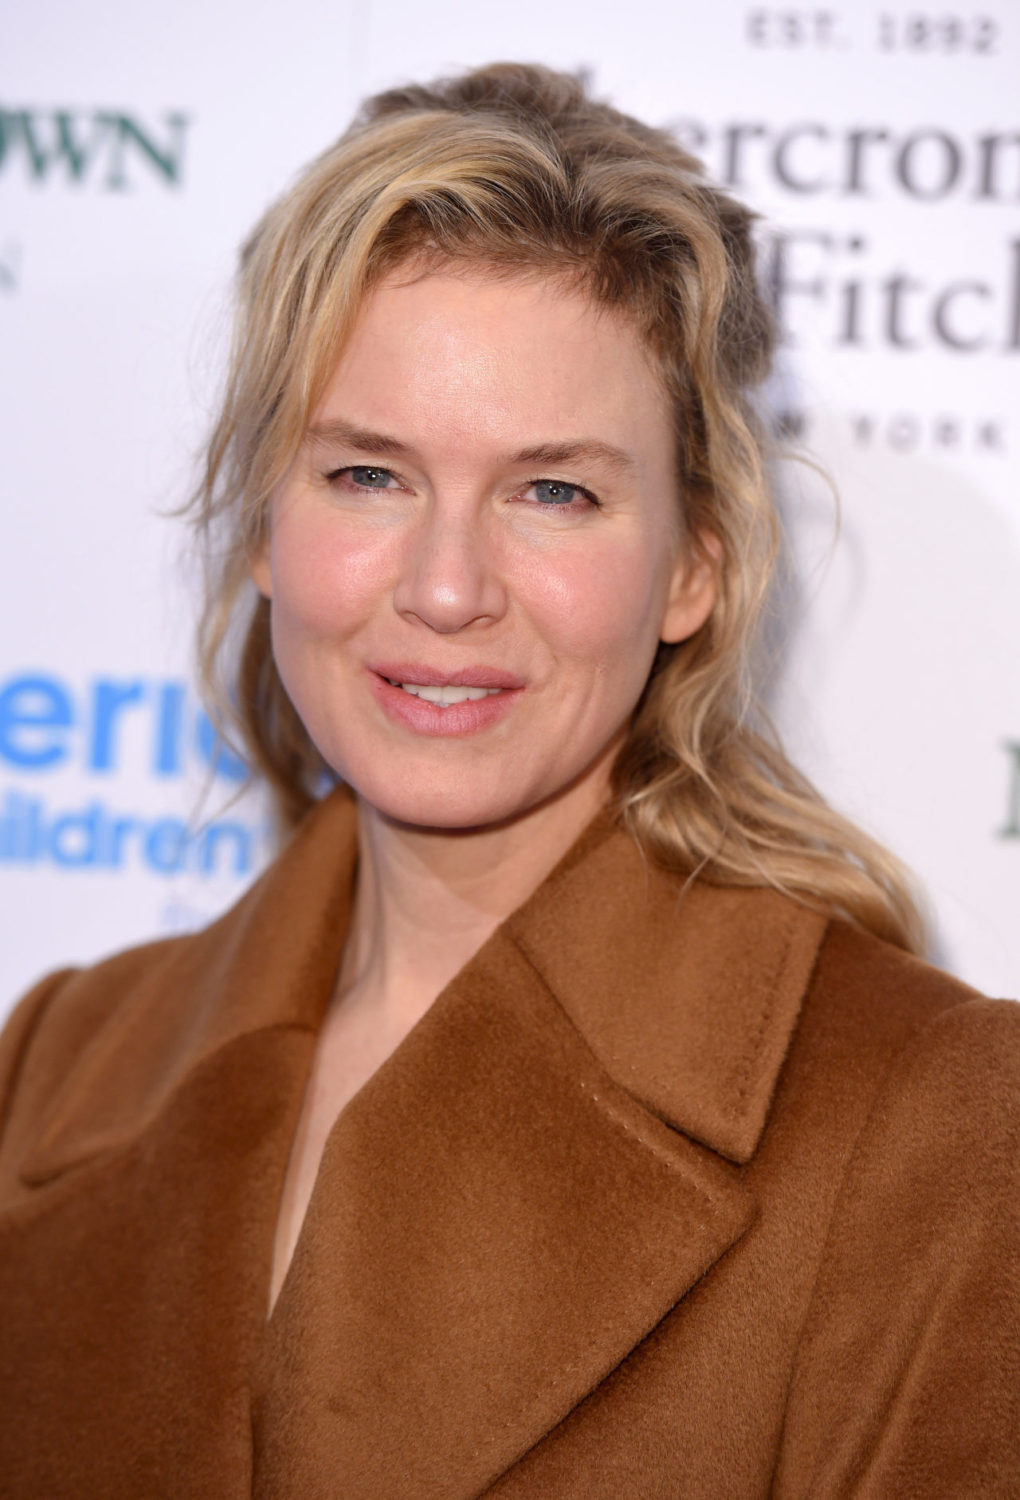 happy birthday to renee zellweger   totpi